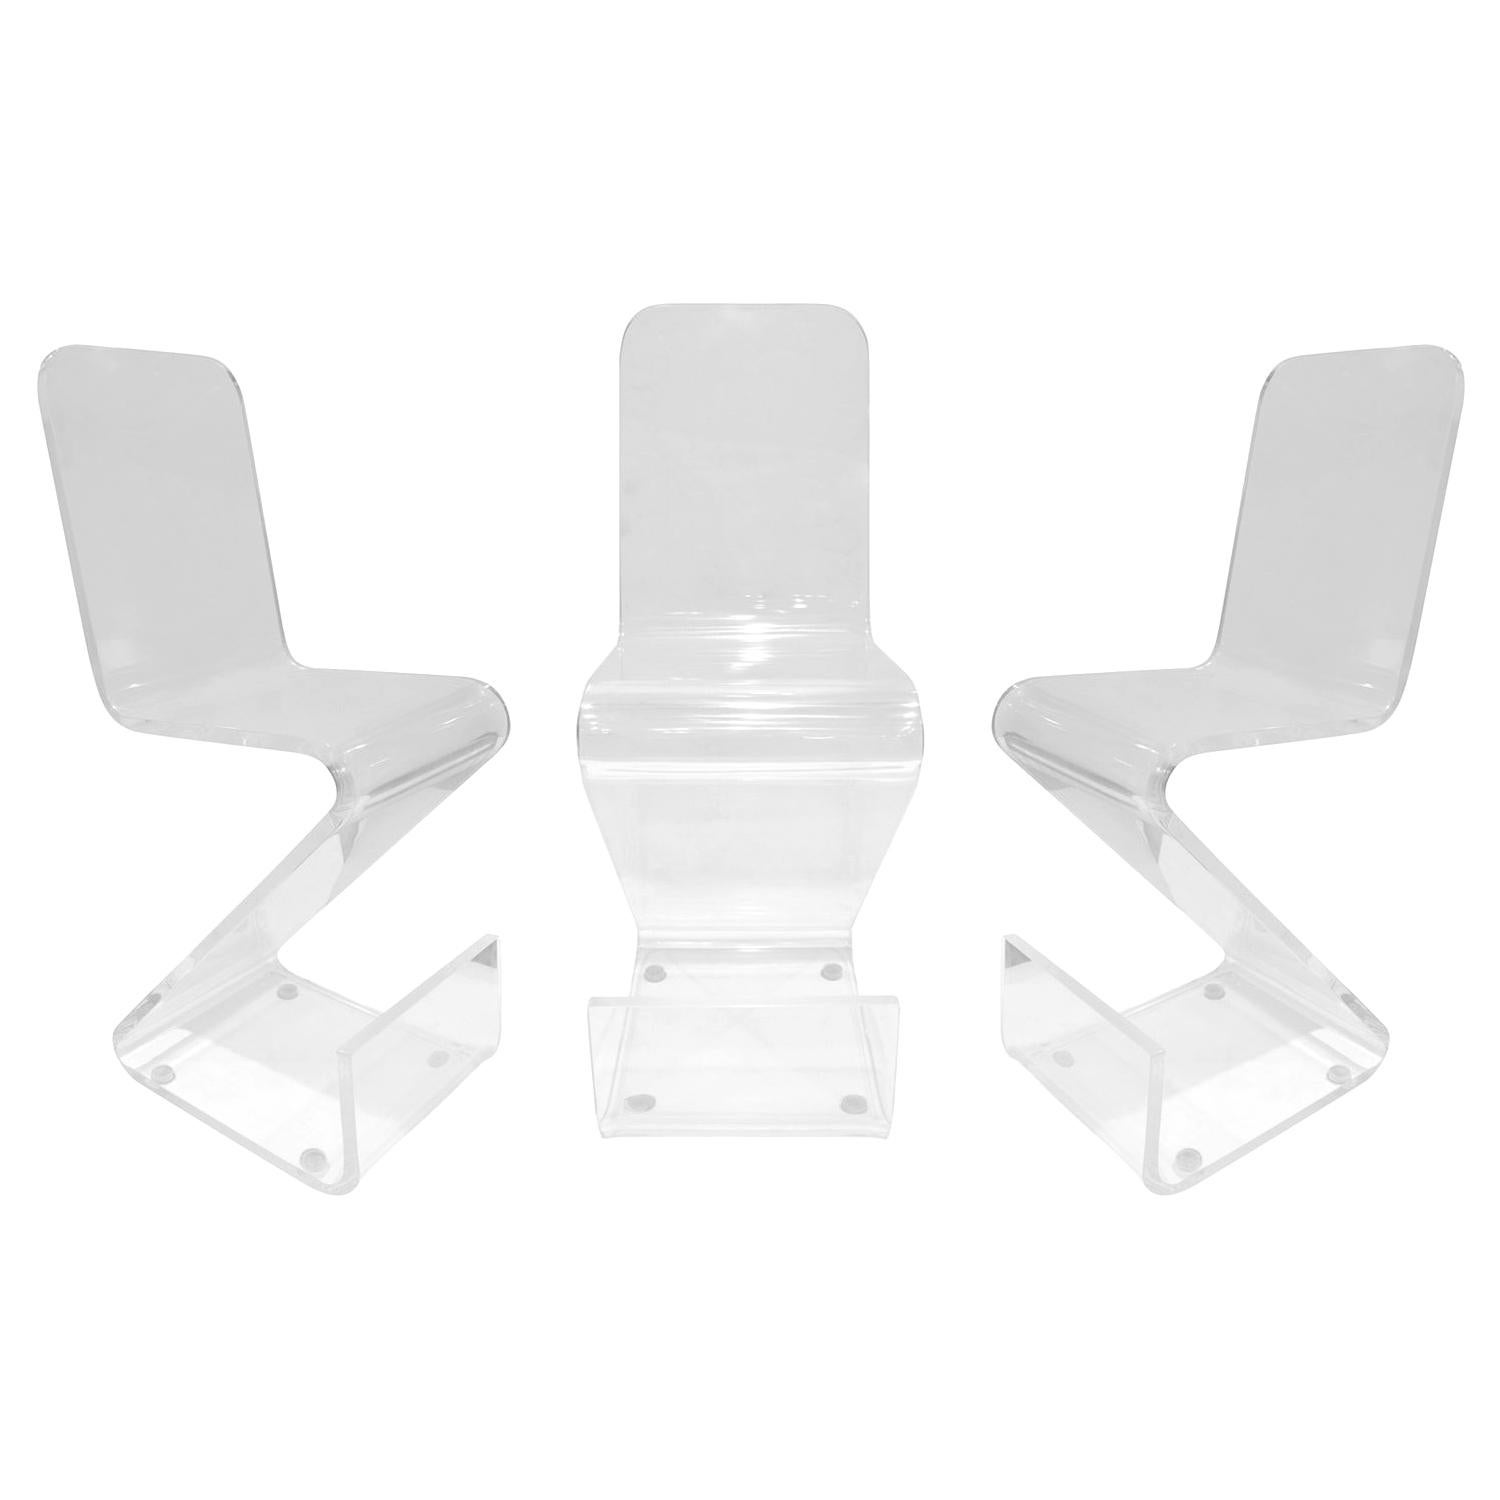 Set of 3 Molded Solid Lucite Barstools, 1970s